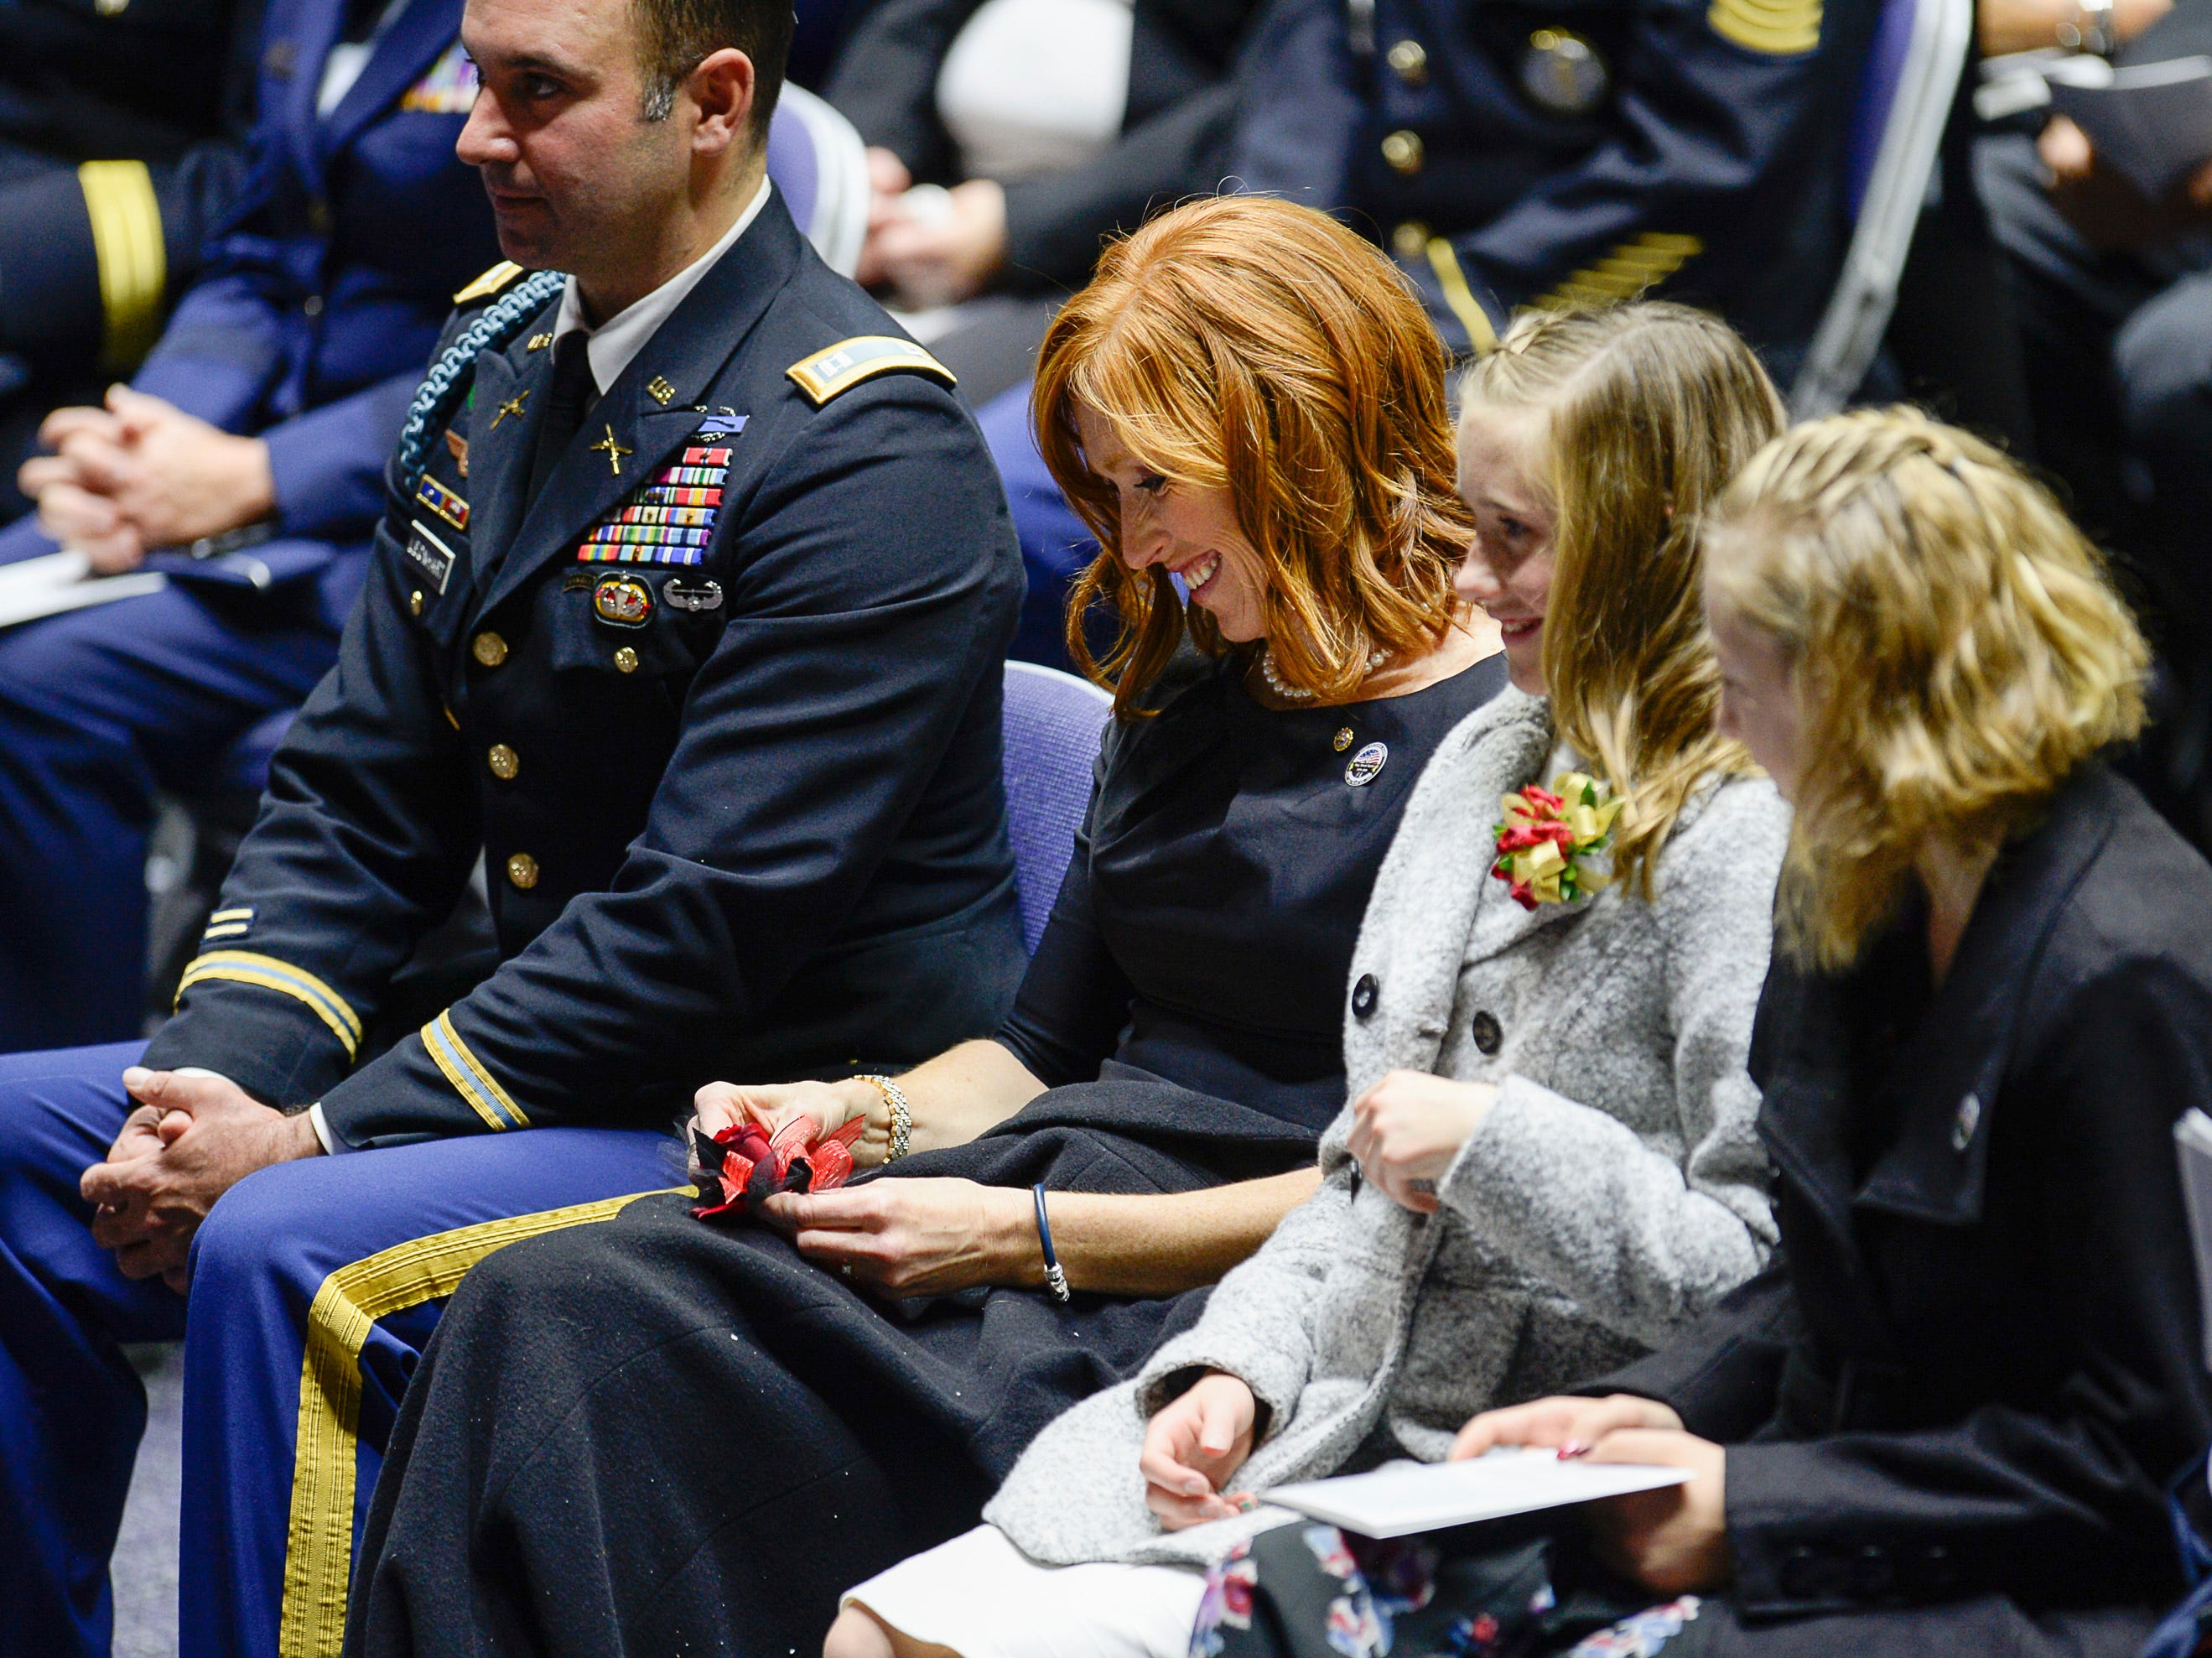 Jennie Taylor laughs alongside his children as funny stories are relayed about her husband Maj. Brent R. Taylor during his funeral services at Weber State University's Dee Event Center in Ogden, Utah on Saturday, Nov. 17, 2018.